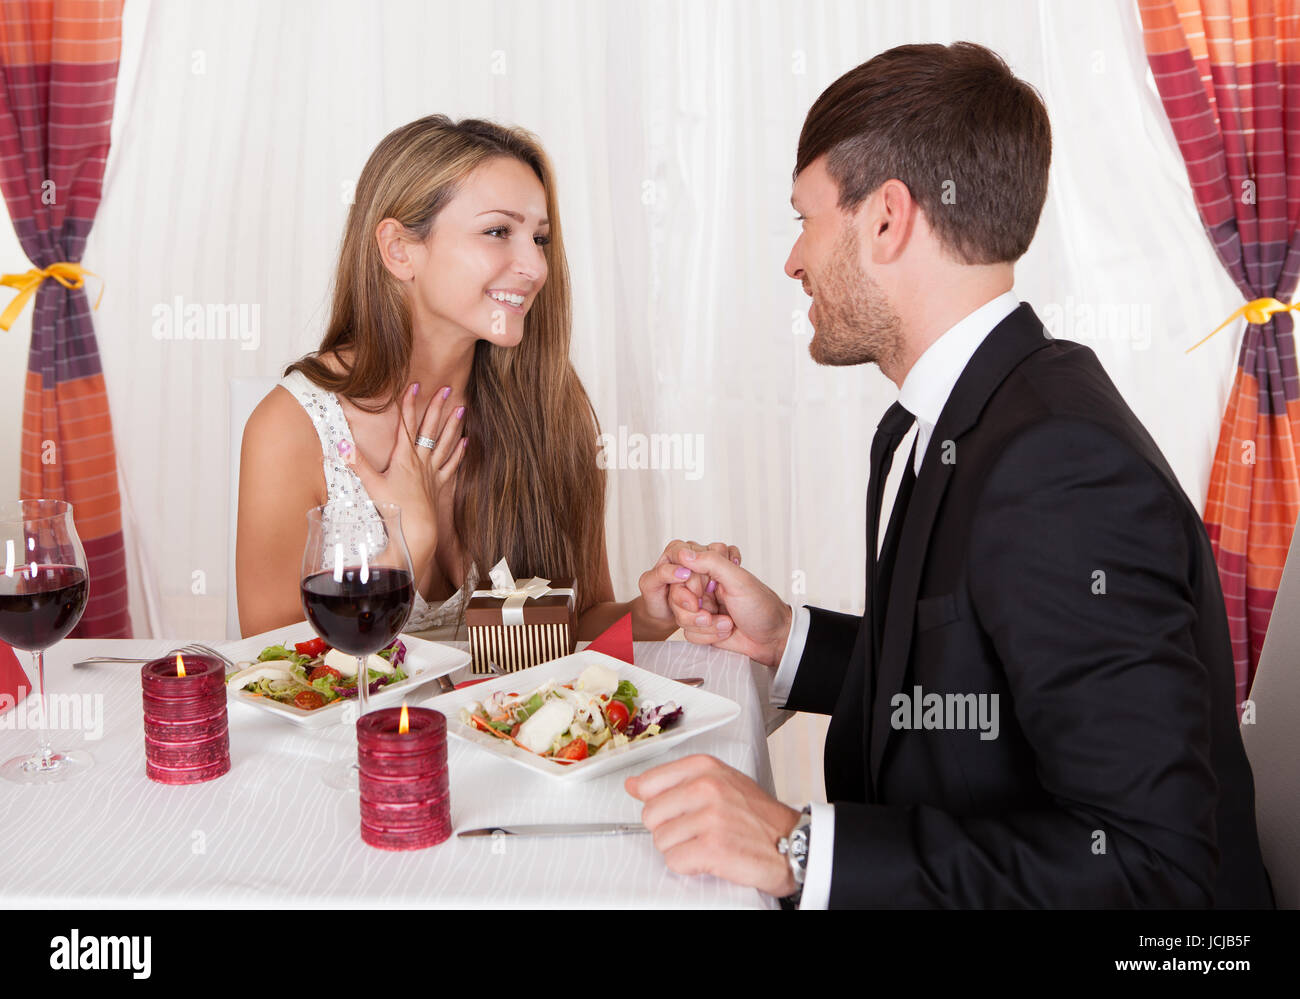 a09d710ffc84 Happy young woman receives a gift from her partner. Romantic dinner setting  with young couple dressed in evening wear